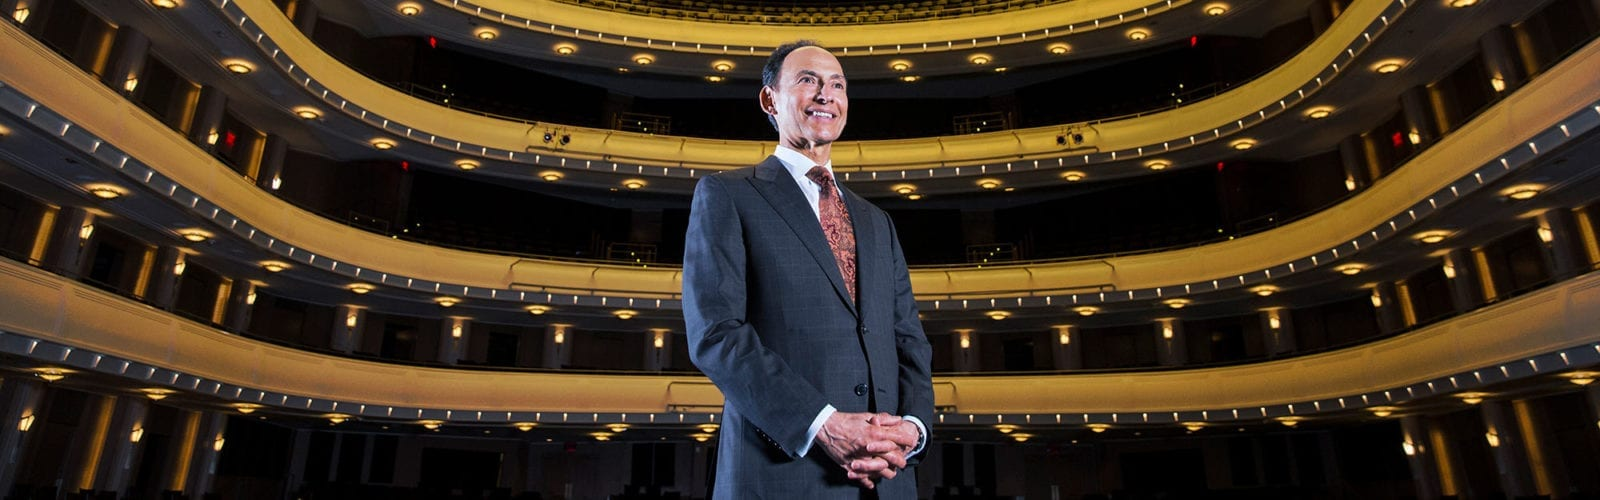 Investment Counsel Company President Randy Garcia onstage at the Smith Center for Performing Arts in Las Vegas